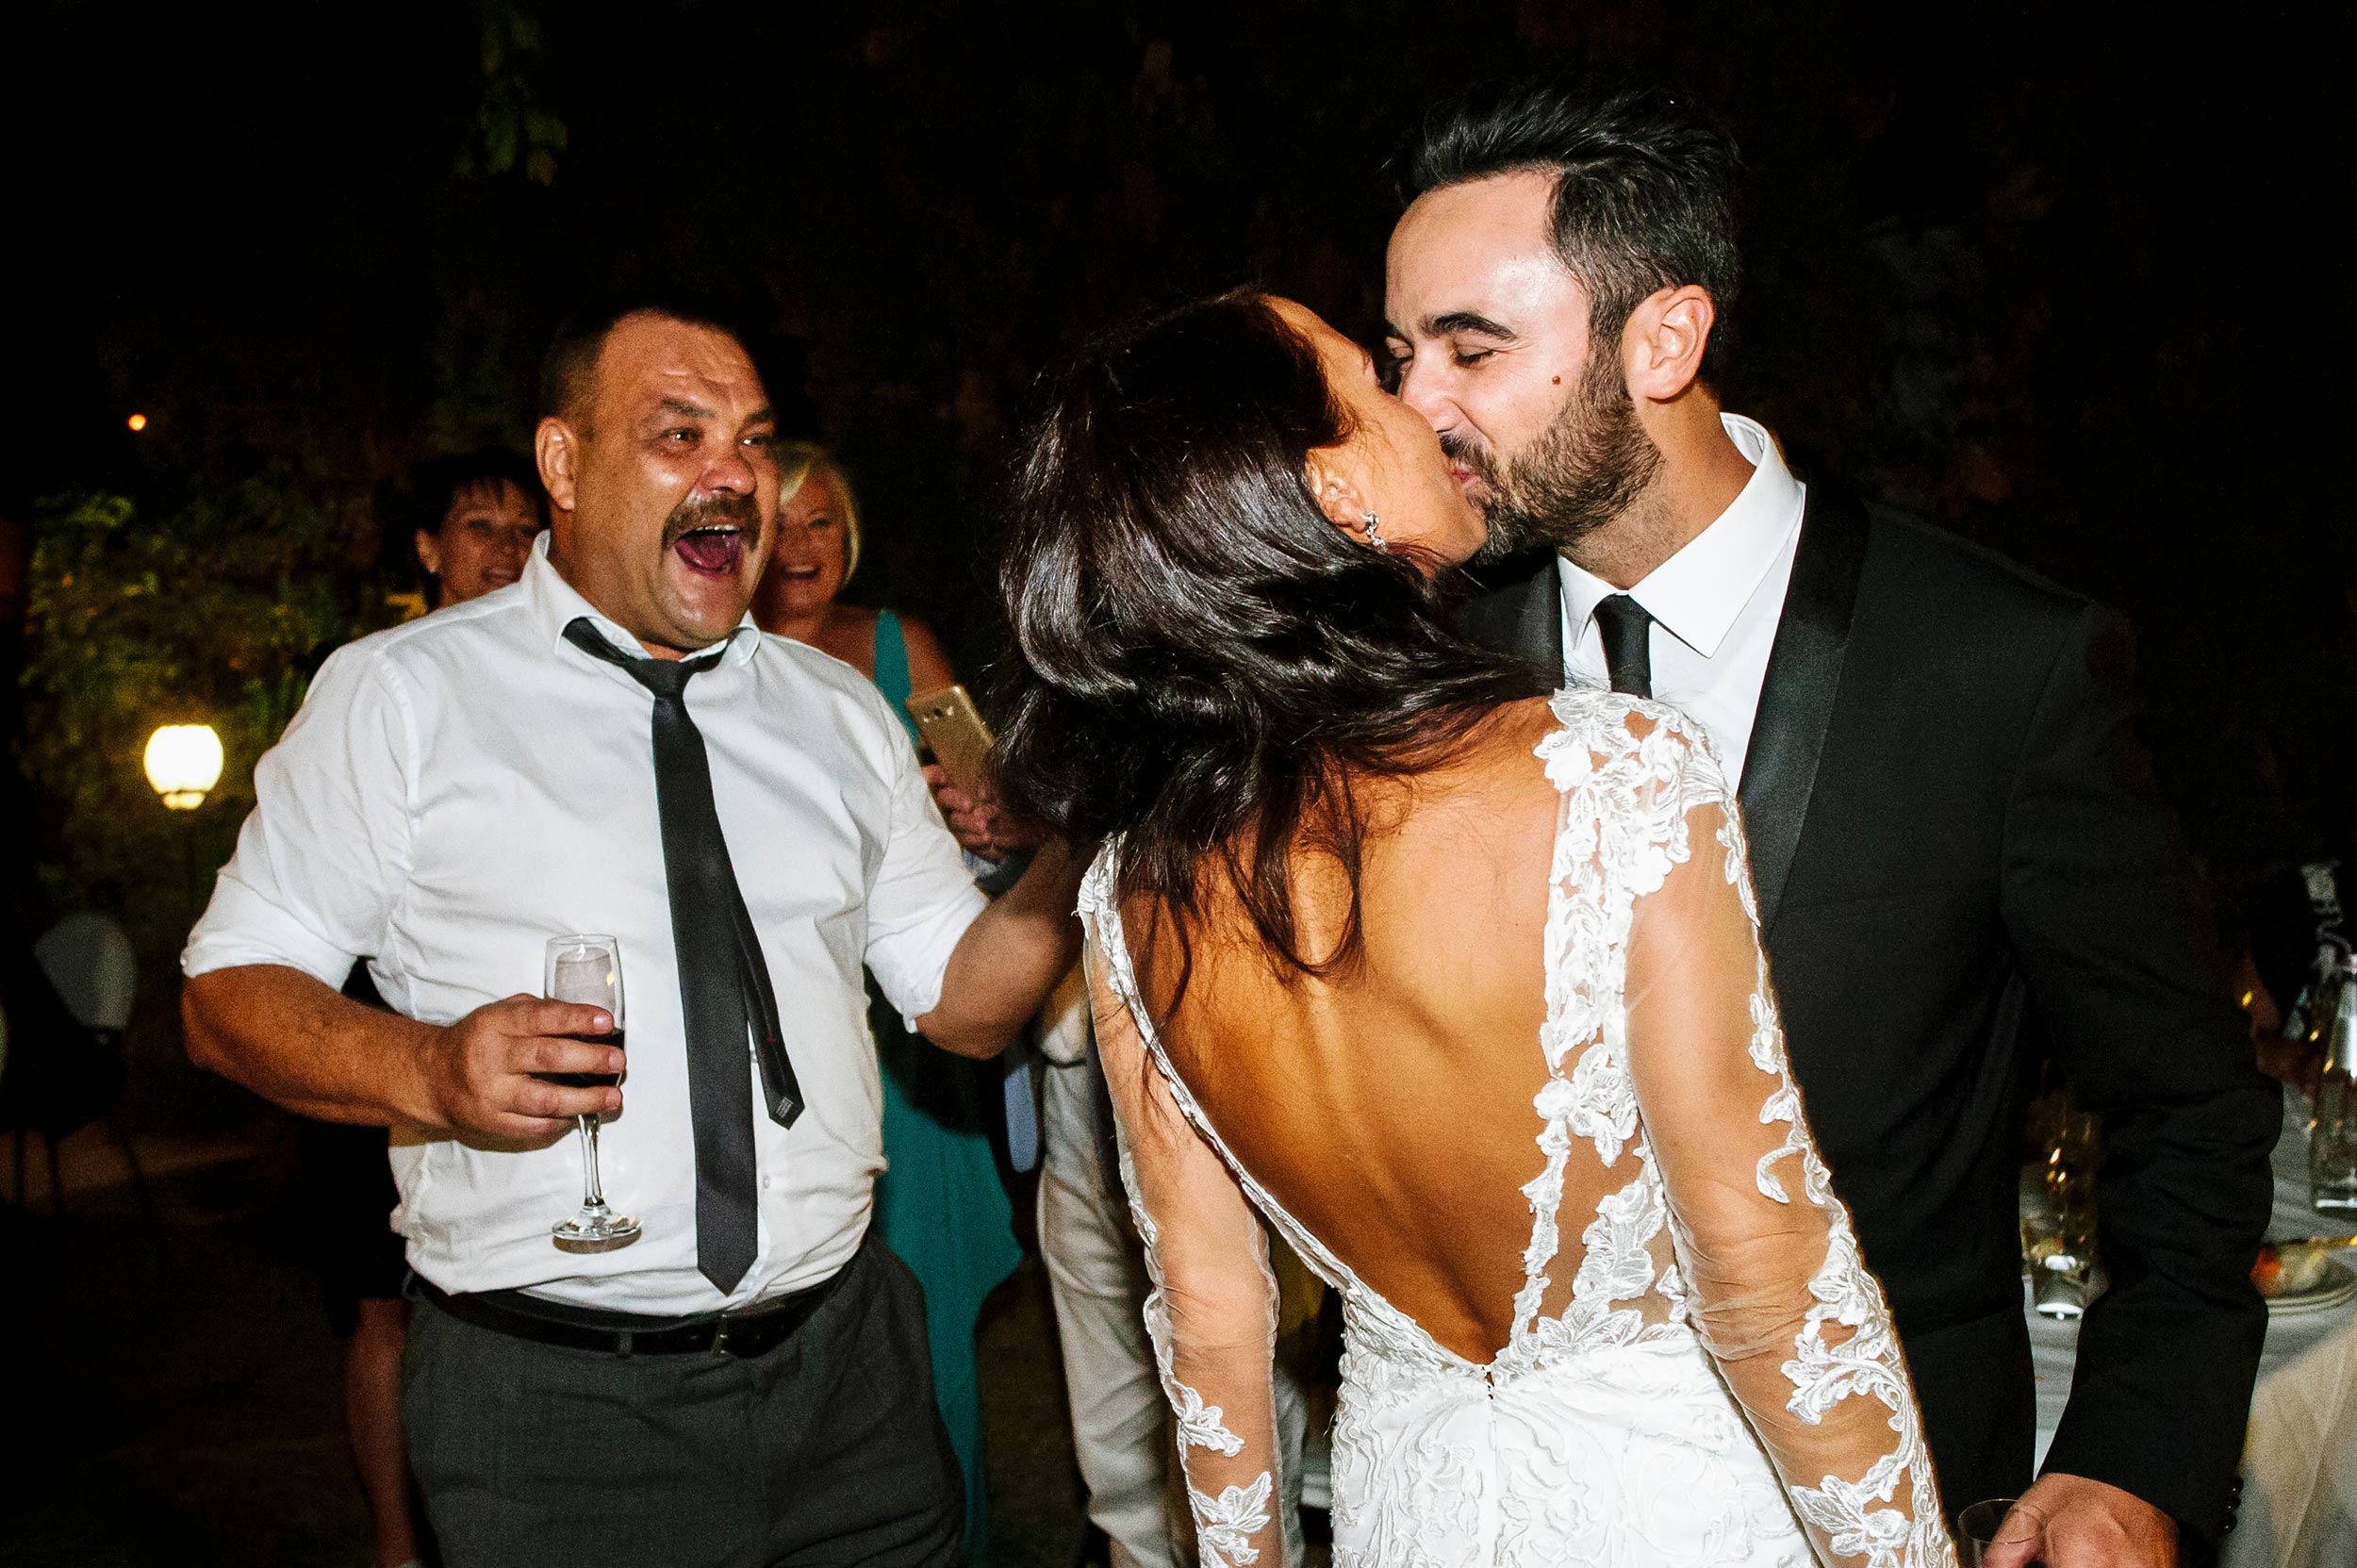 bride-and-groom-kissing-in-front-of-brides-father.jpg